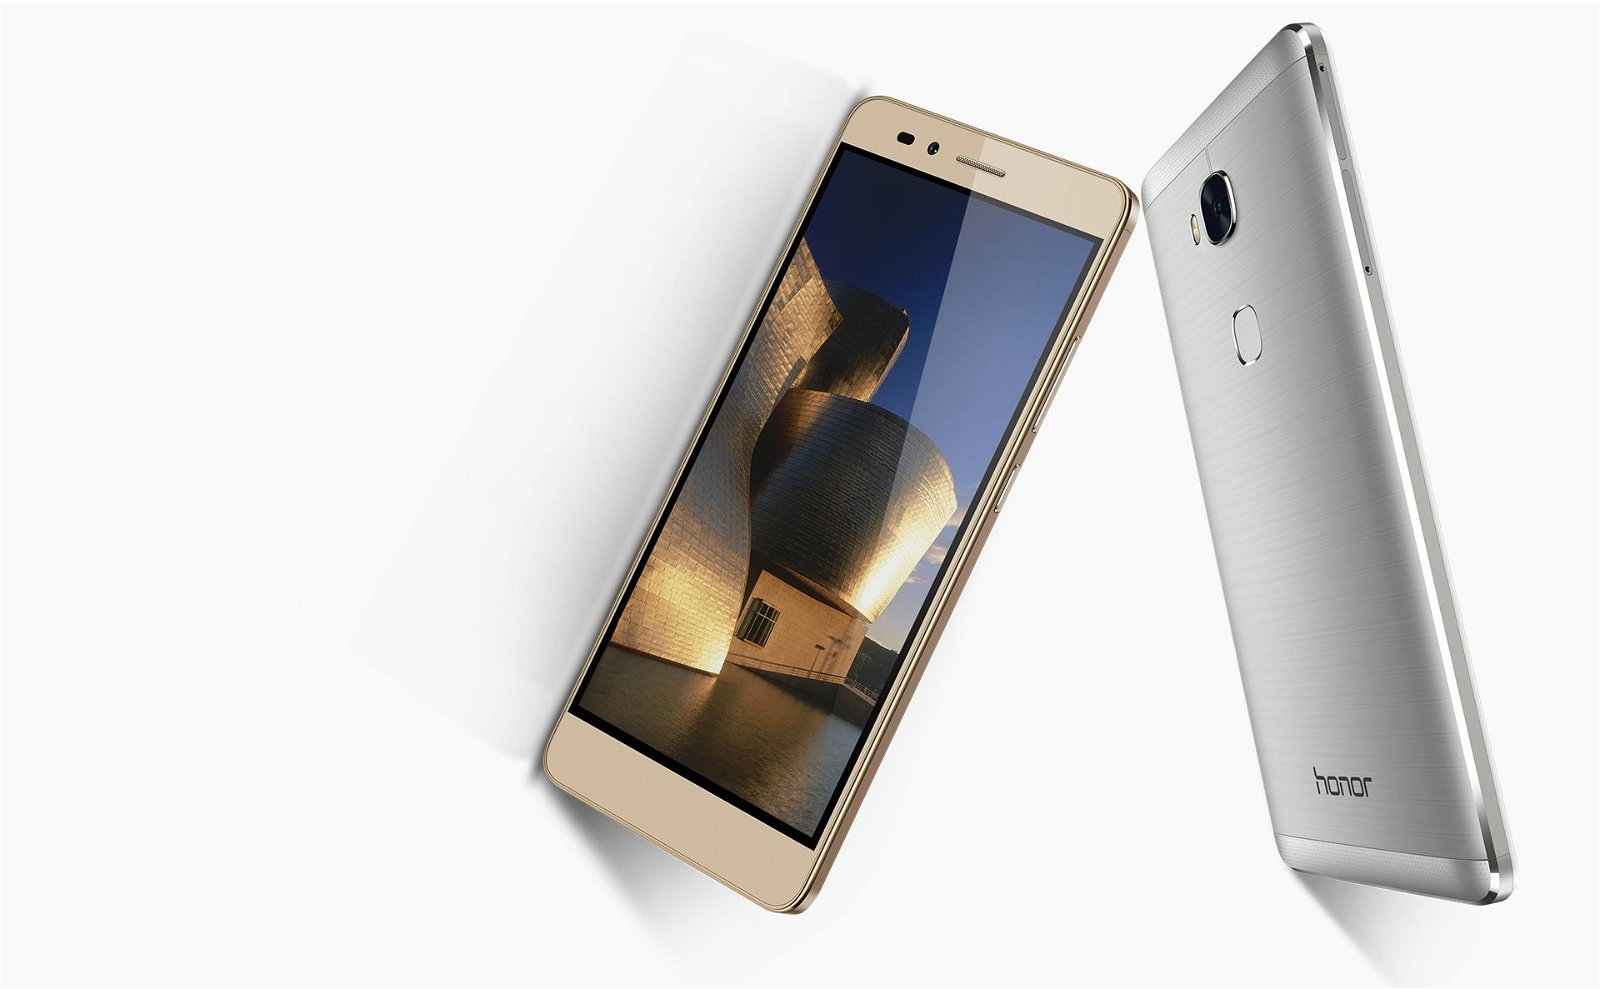 Huawei Honor 5X is Launched in China With 5.5 Inch 1080p Display 6